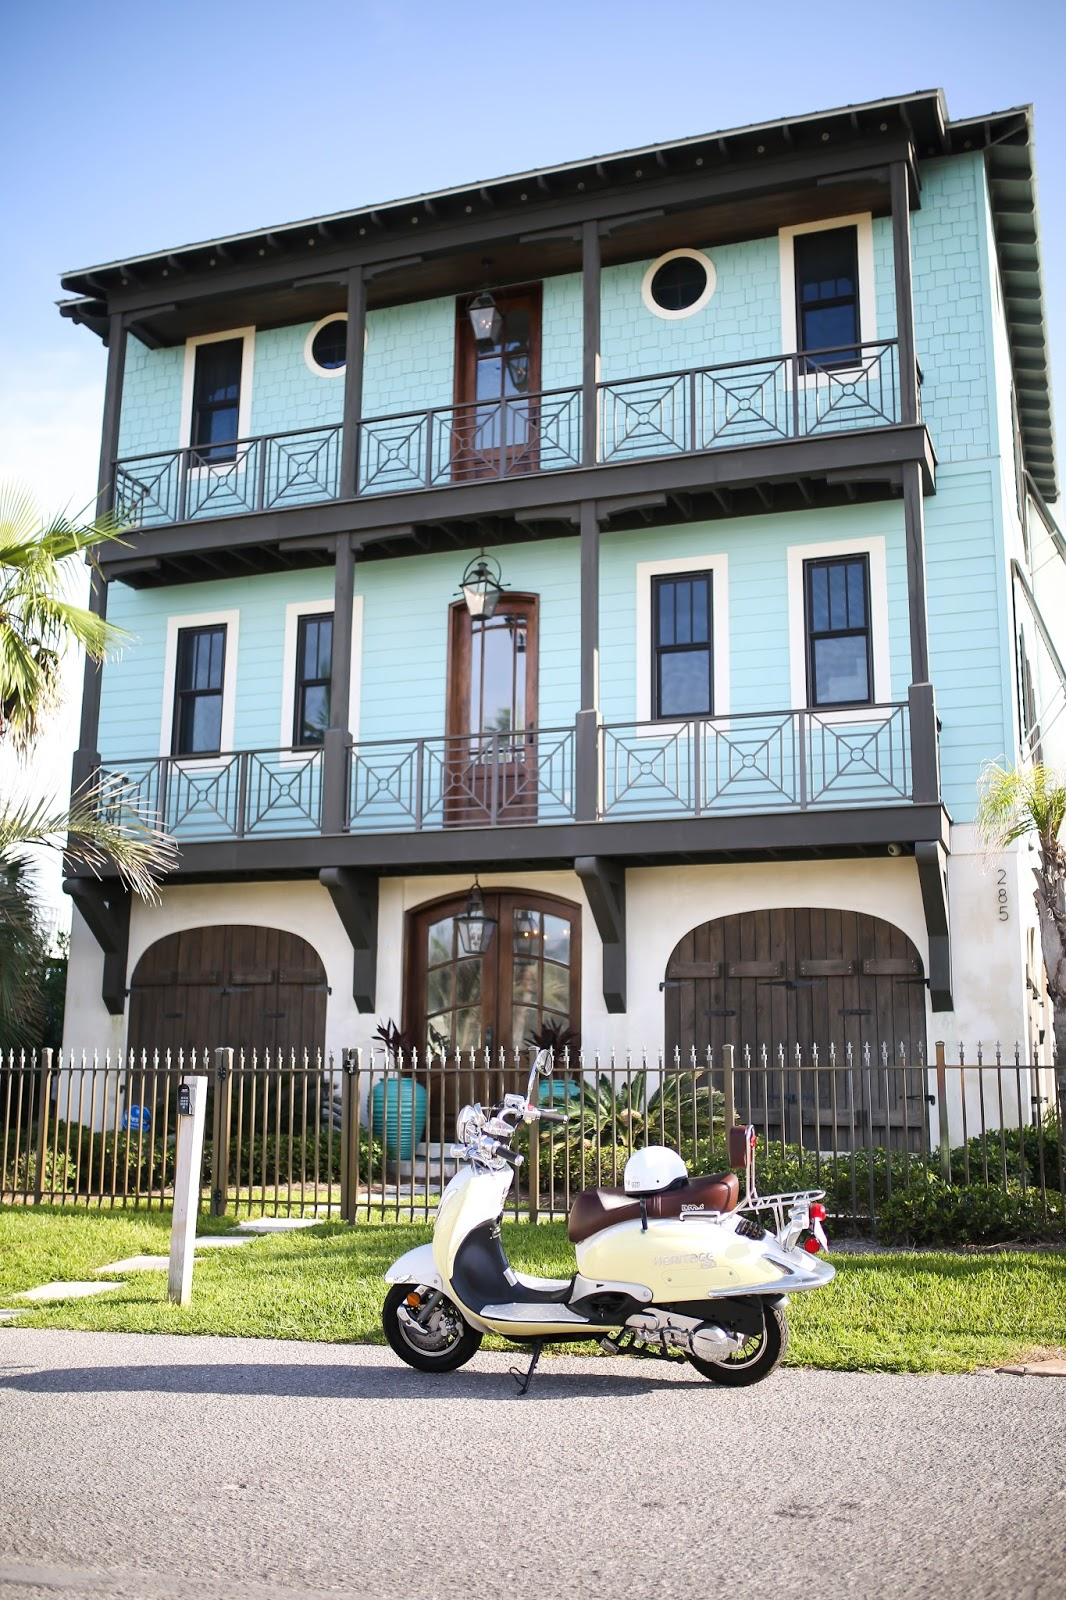 Where We Stayed What Did In Seaside Rosemary Beach